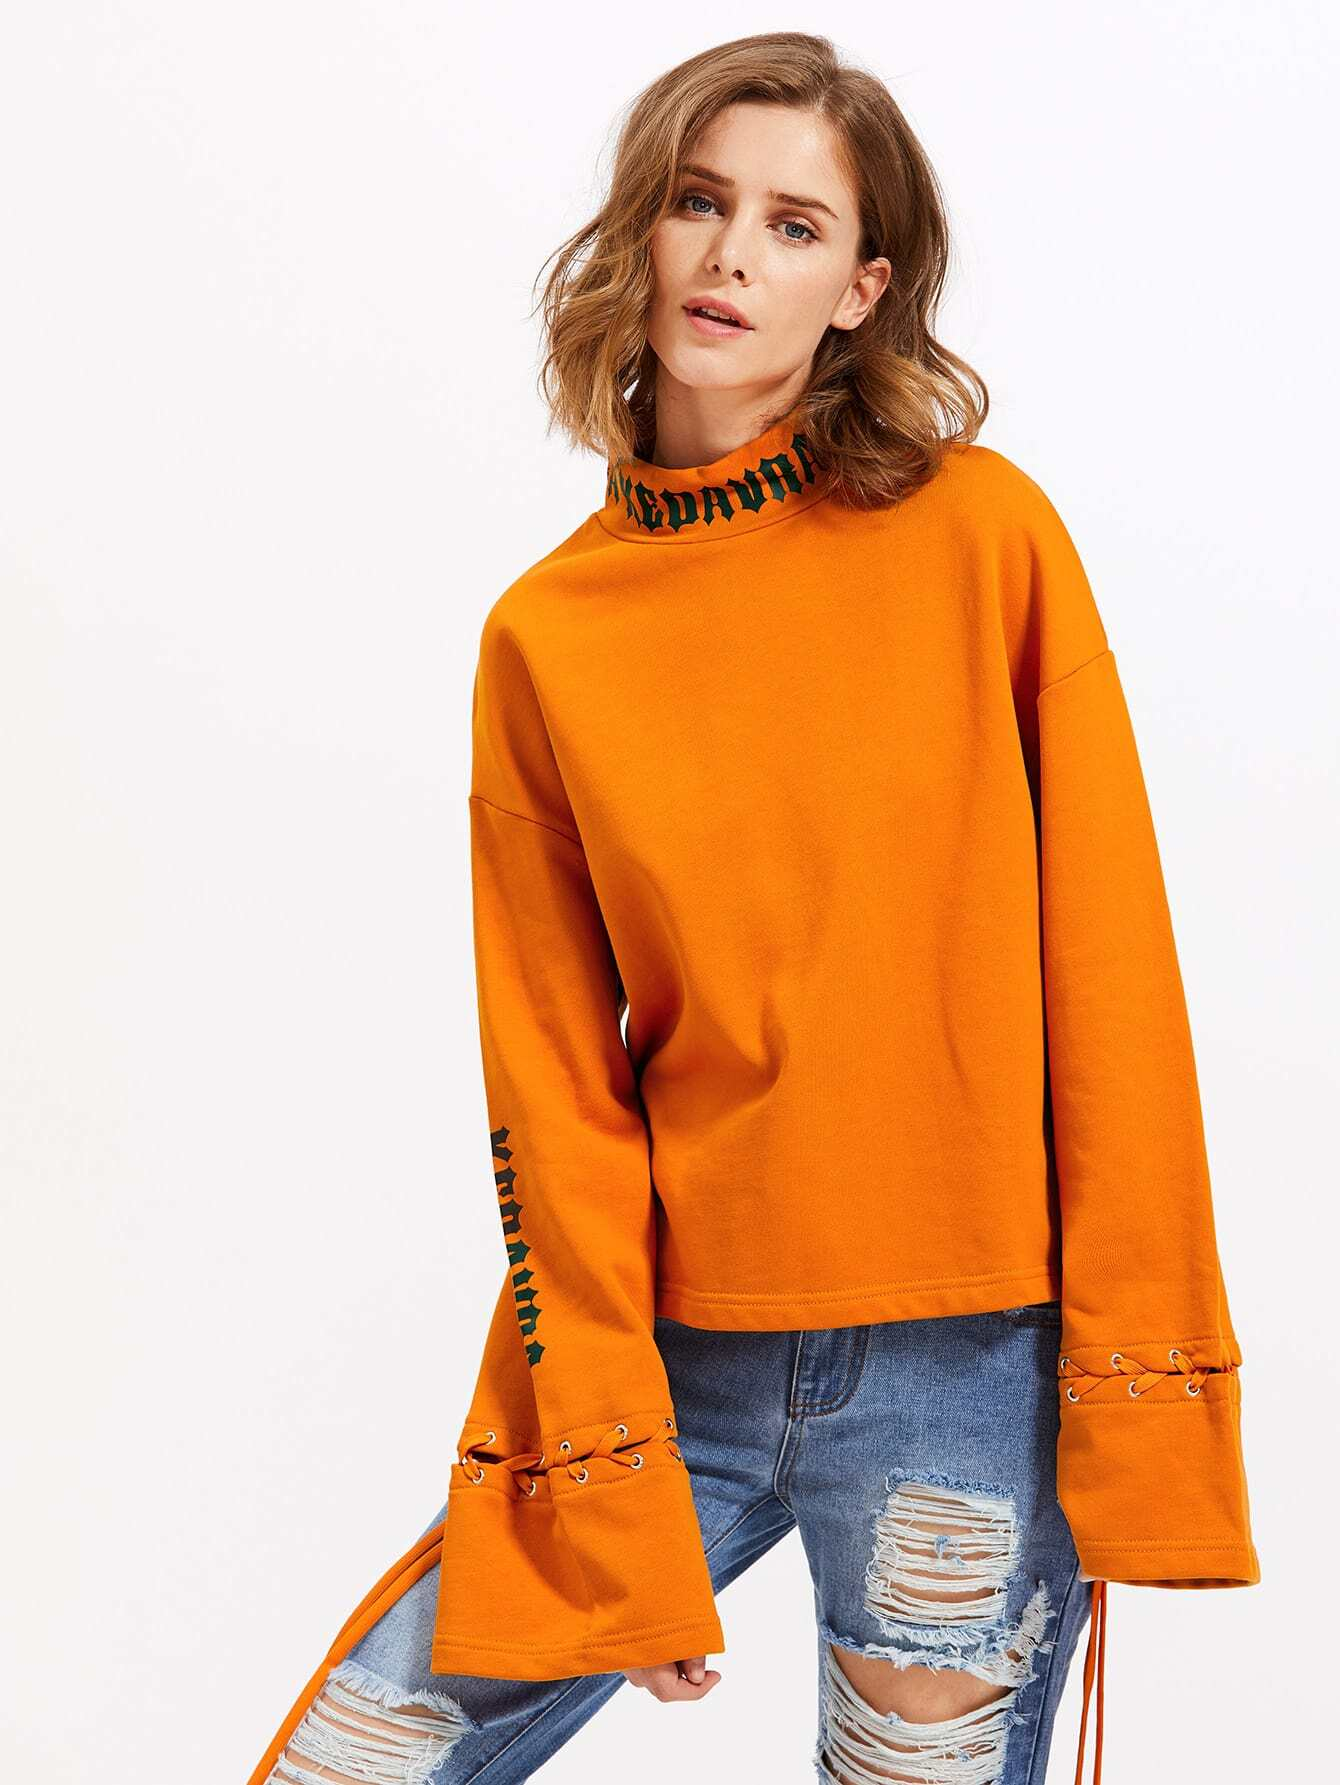 Zip Back Eyelet Lace Up Sleeve Sweatshirt bagatt сумка на плечо